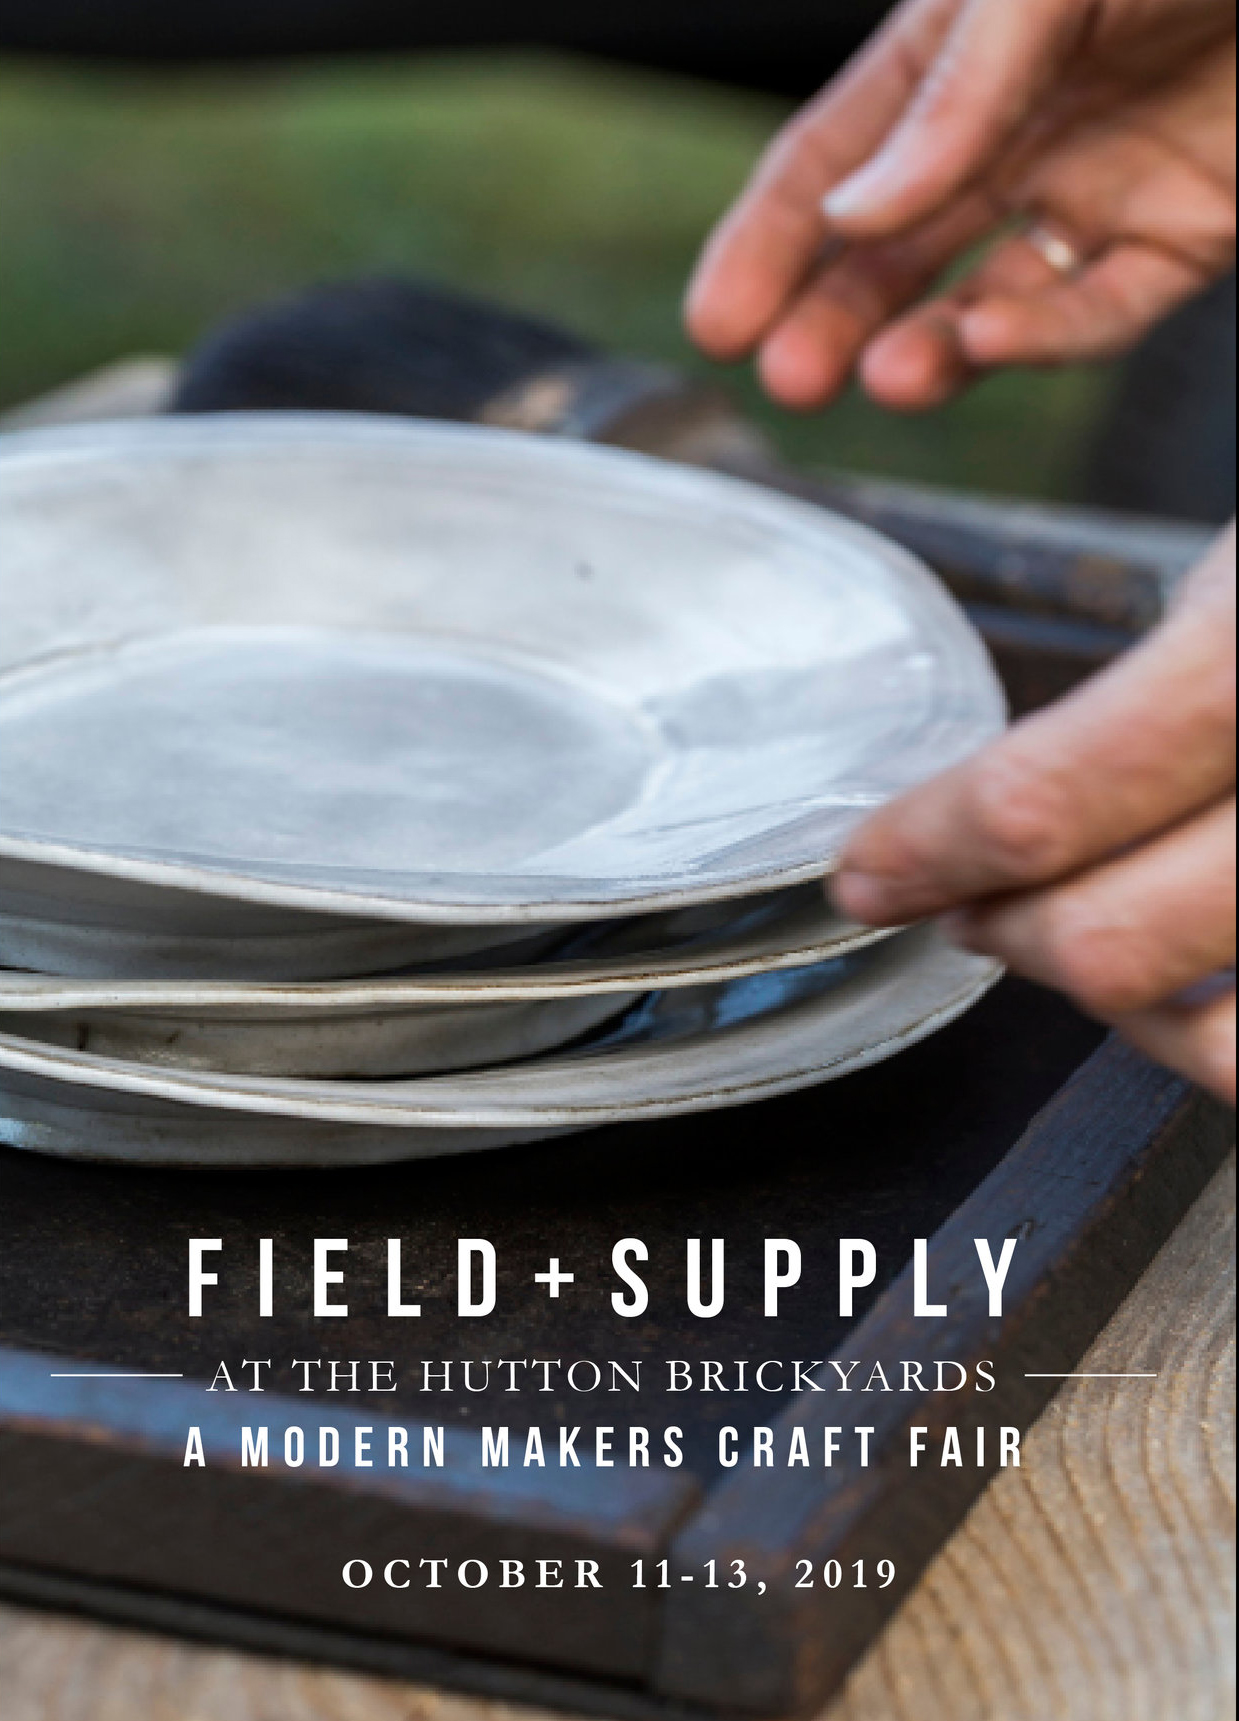 FIELD + SUPPLY Fall Market inKingston, NY - Friday - Sunday, October 11 - 13 (Columbus Day Weekend)Friday: 2:00 - 6:00pmSaturday: 11:00am - 6:00pmSunday: 11:00am - 5:00pmHutton Brick Yard @ 200 North Street, Kingston, NY 12401